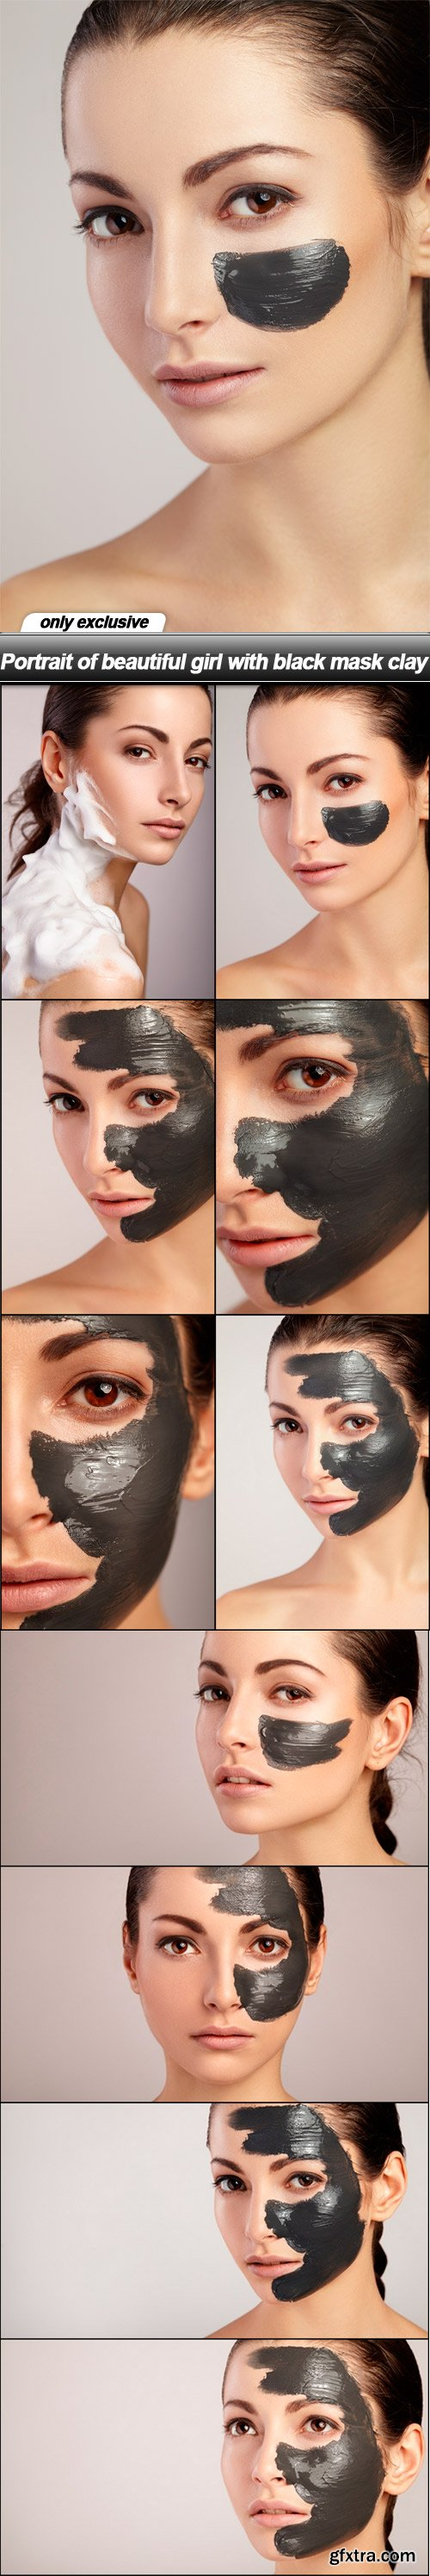 Portrait of beautiful girl with black mask clay - 10 UHQ JPEG